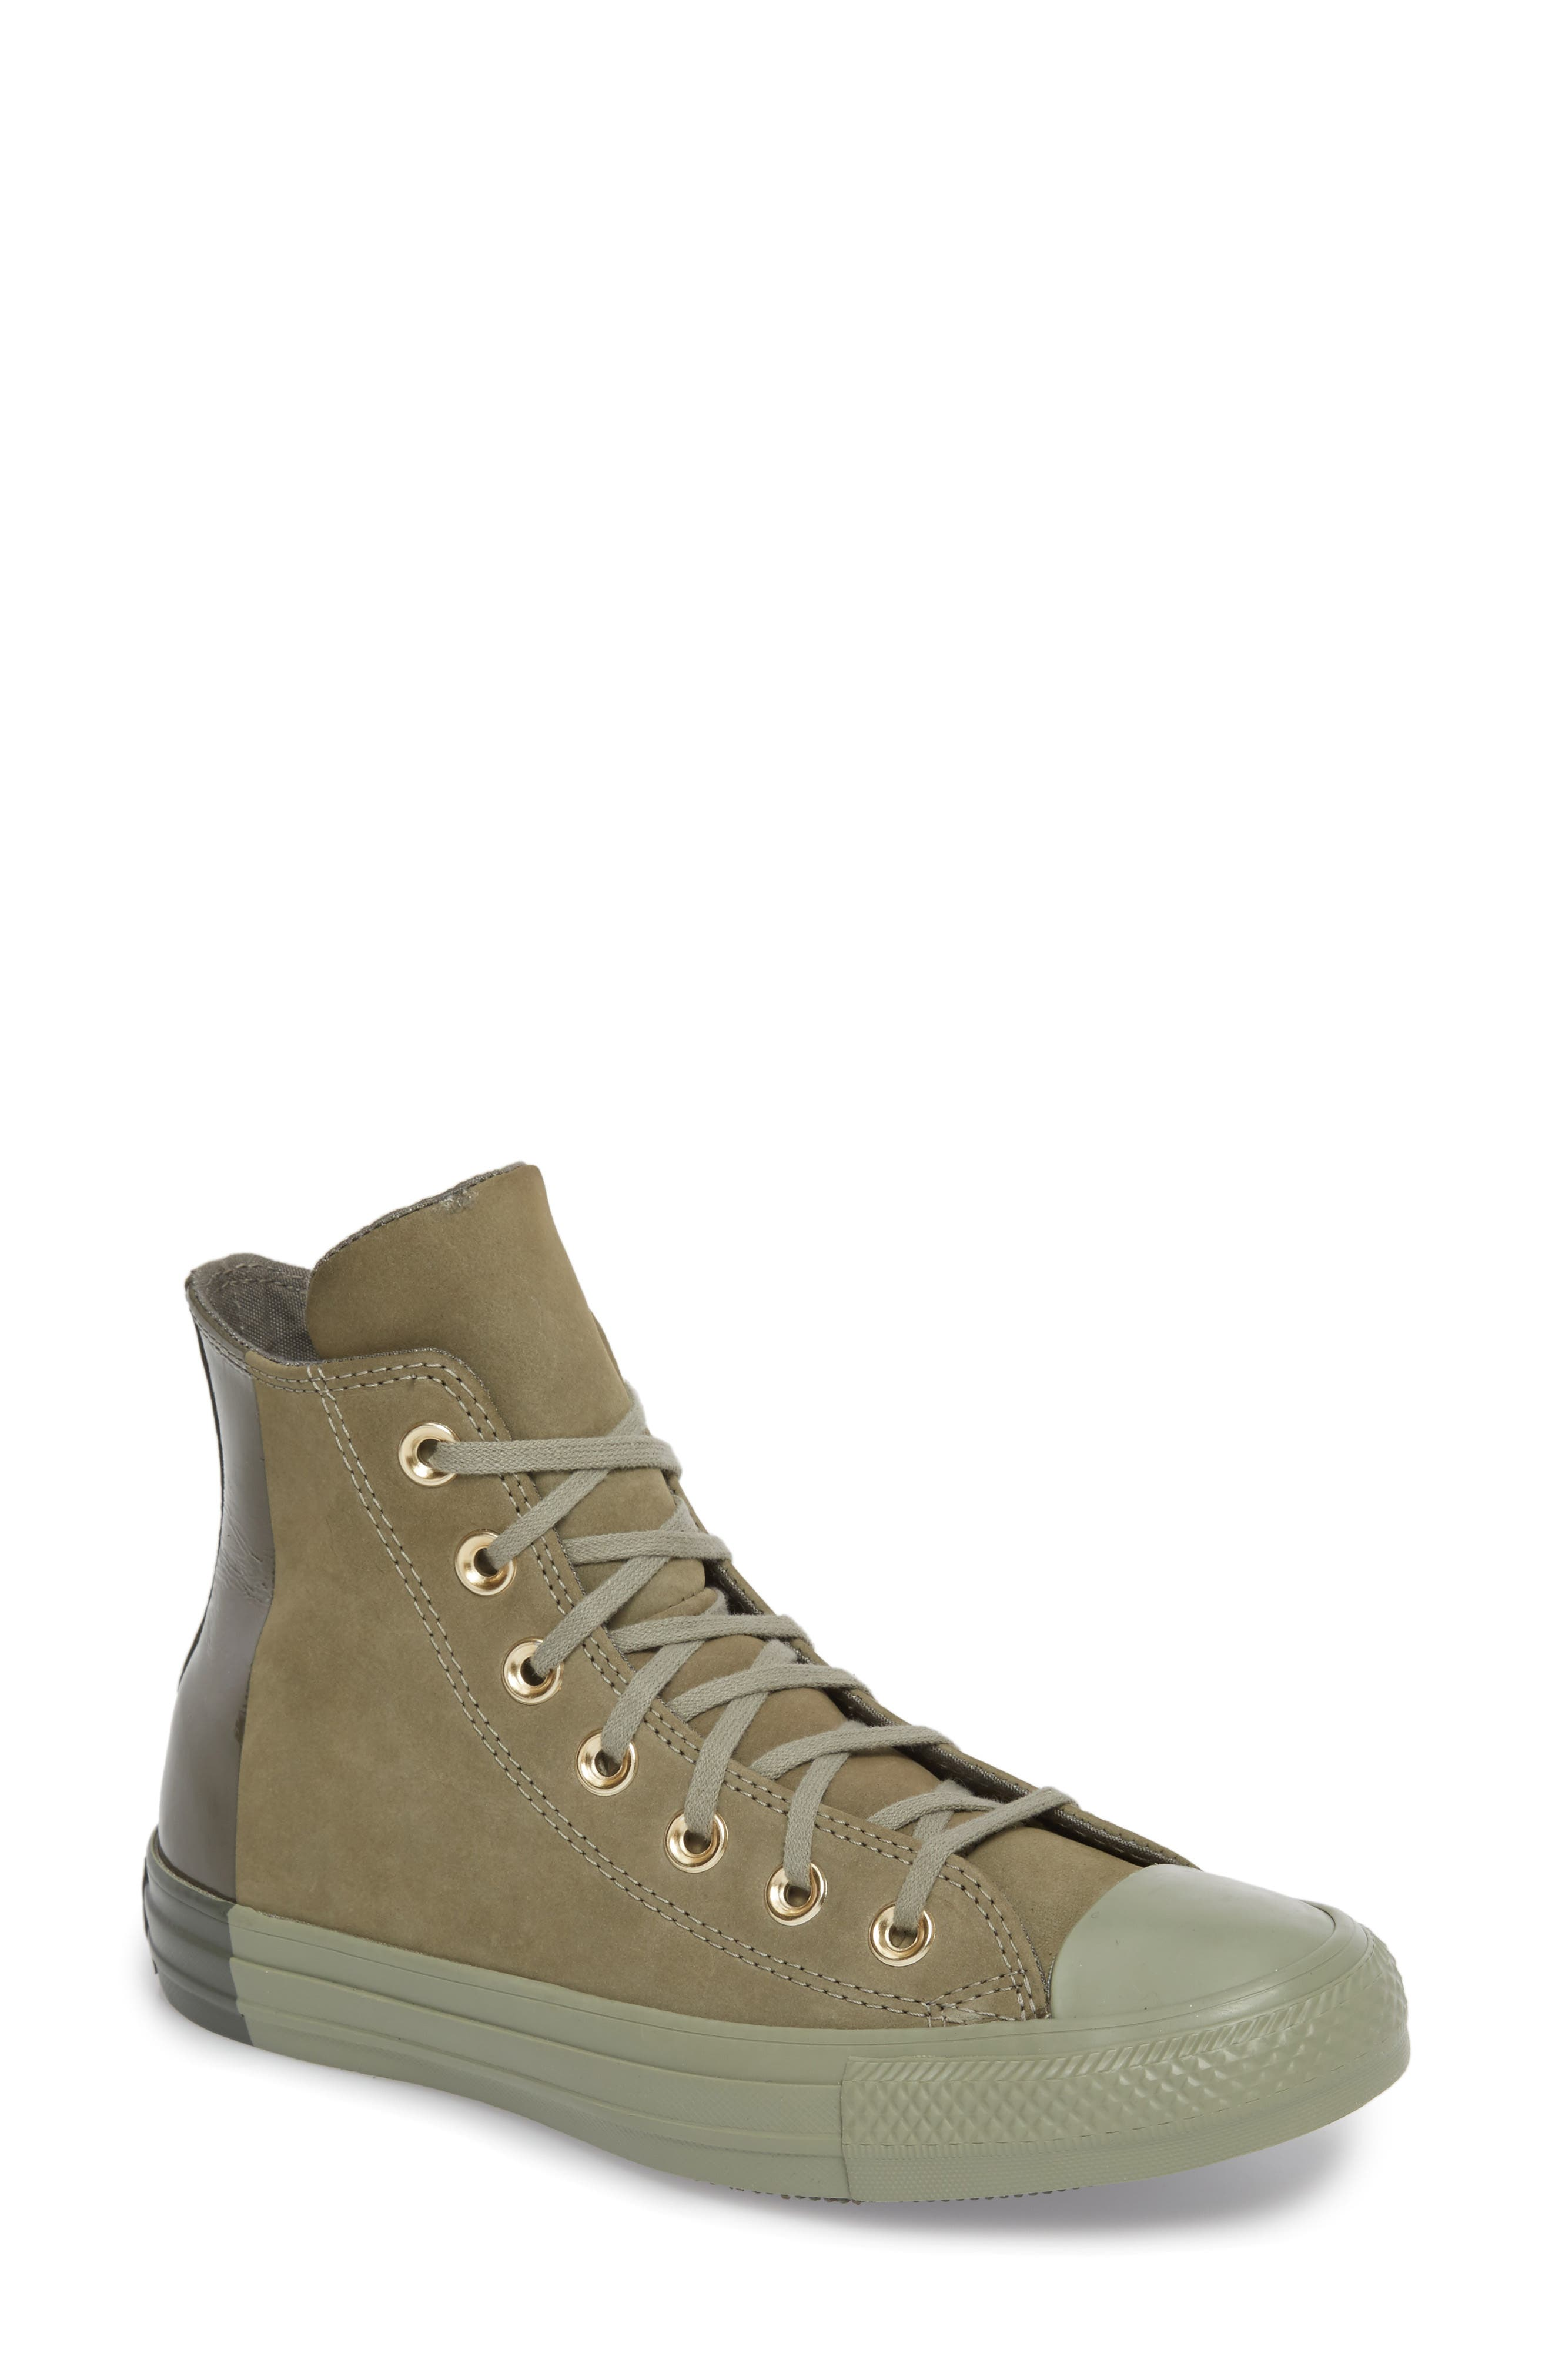 Chuck Taylor<sup>®</sup> All Star<sup>®</sup> High Top Sneaker,                             Main thumbnail 1, color,                             024